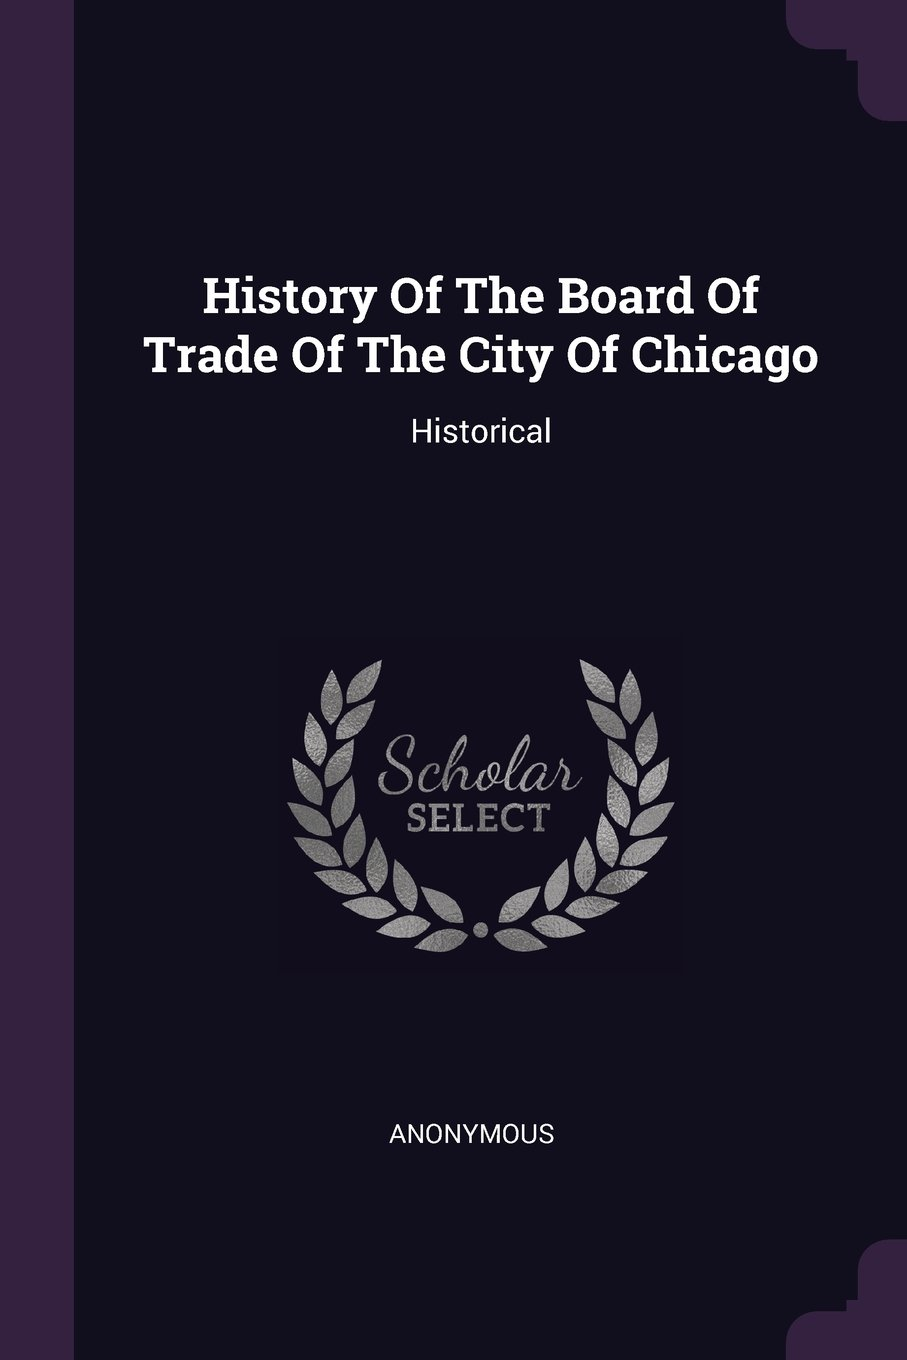 History of the Board of Trade of the City of Chicago: Historical ebook